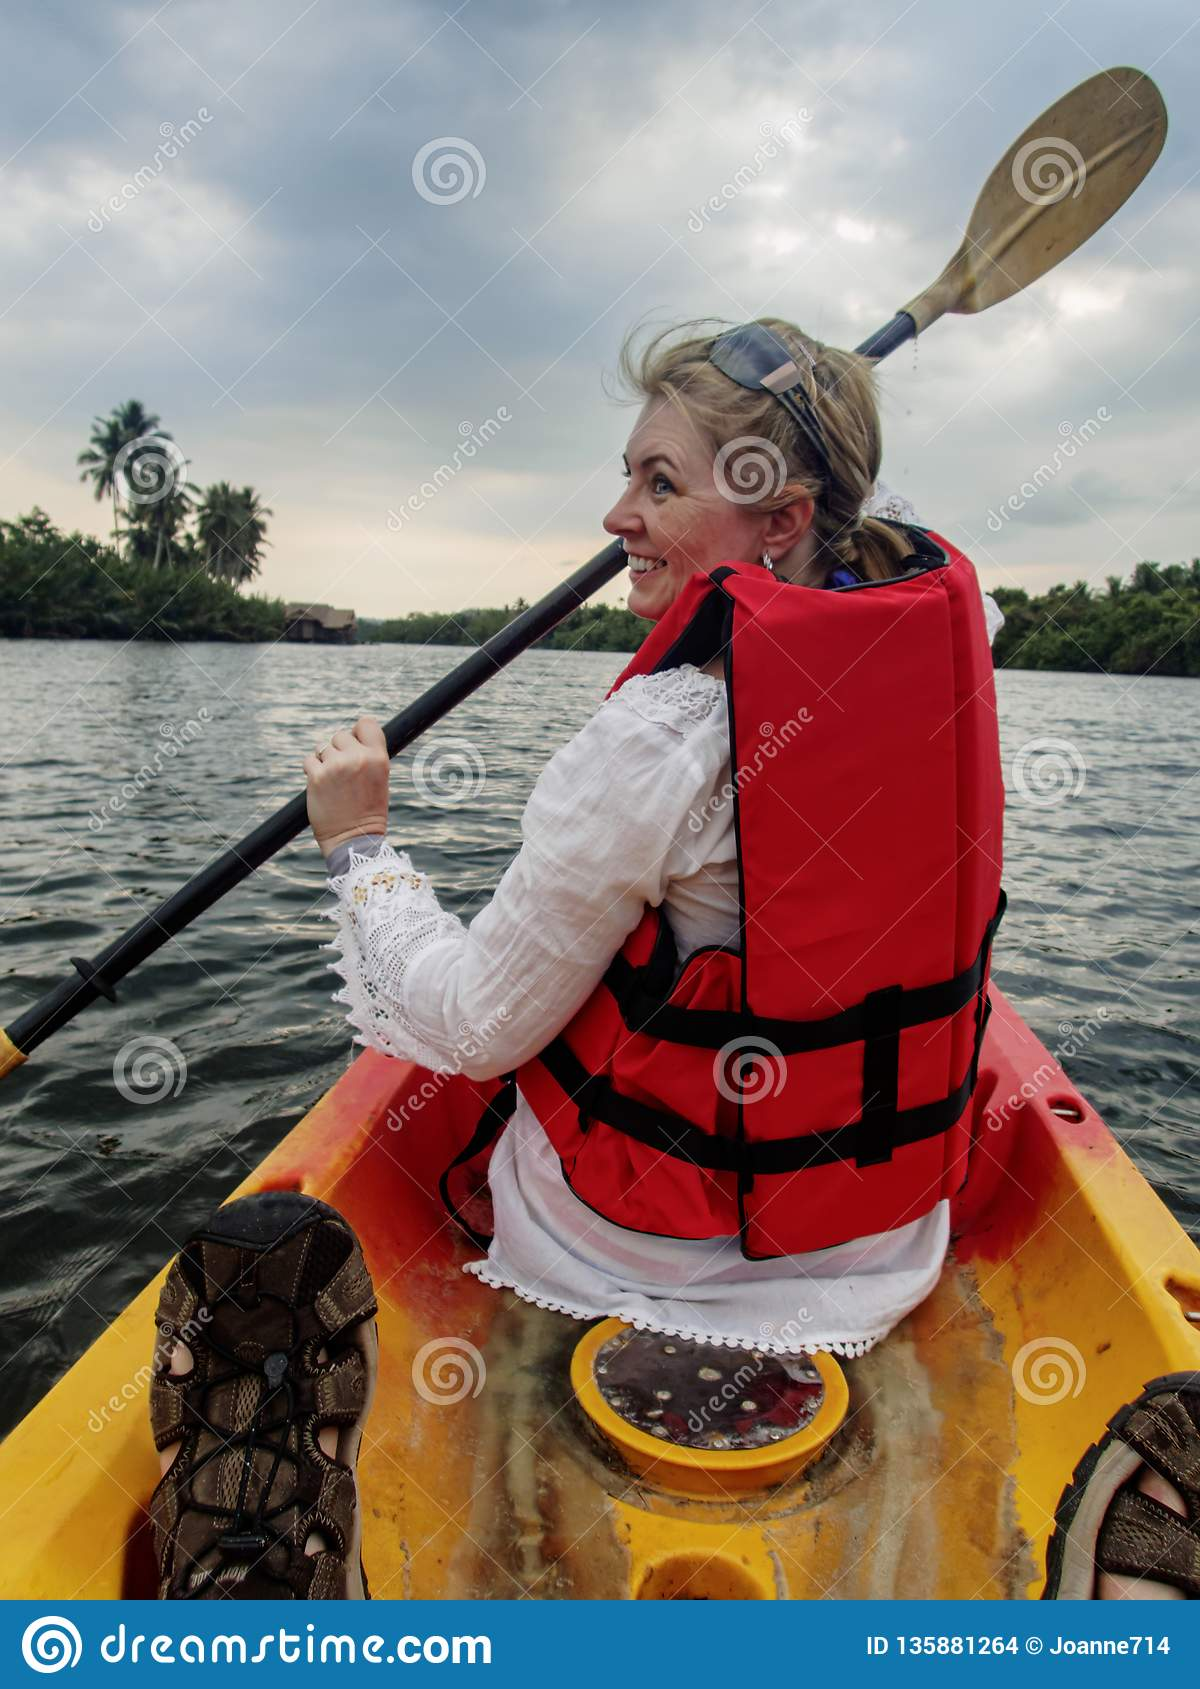 Caucasian woman, mod 40`s kayaking through the cambodian Jungle on the River Kong, wearing red life vest